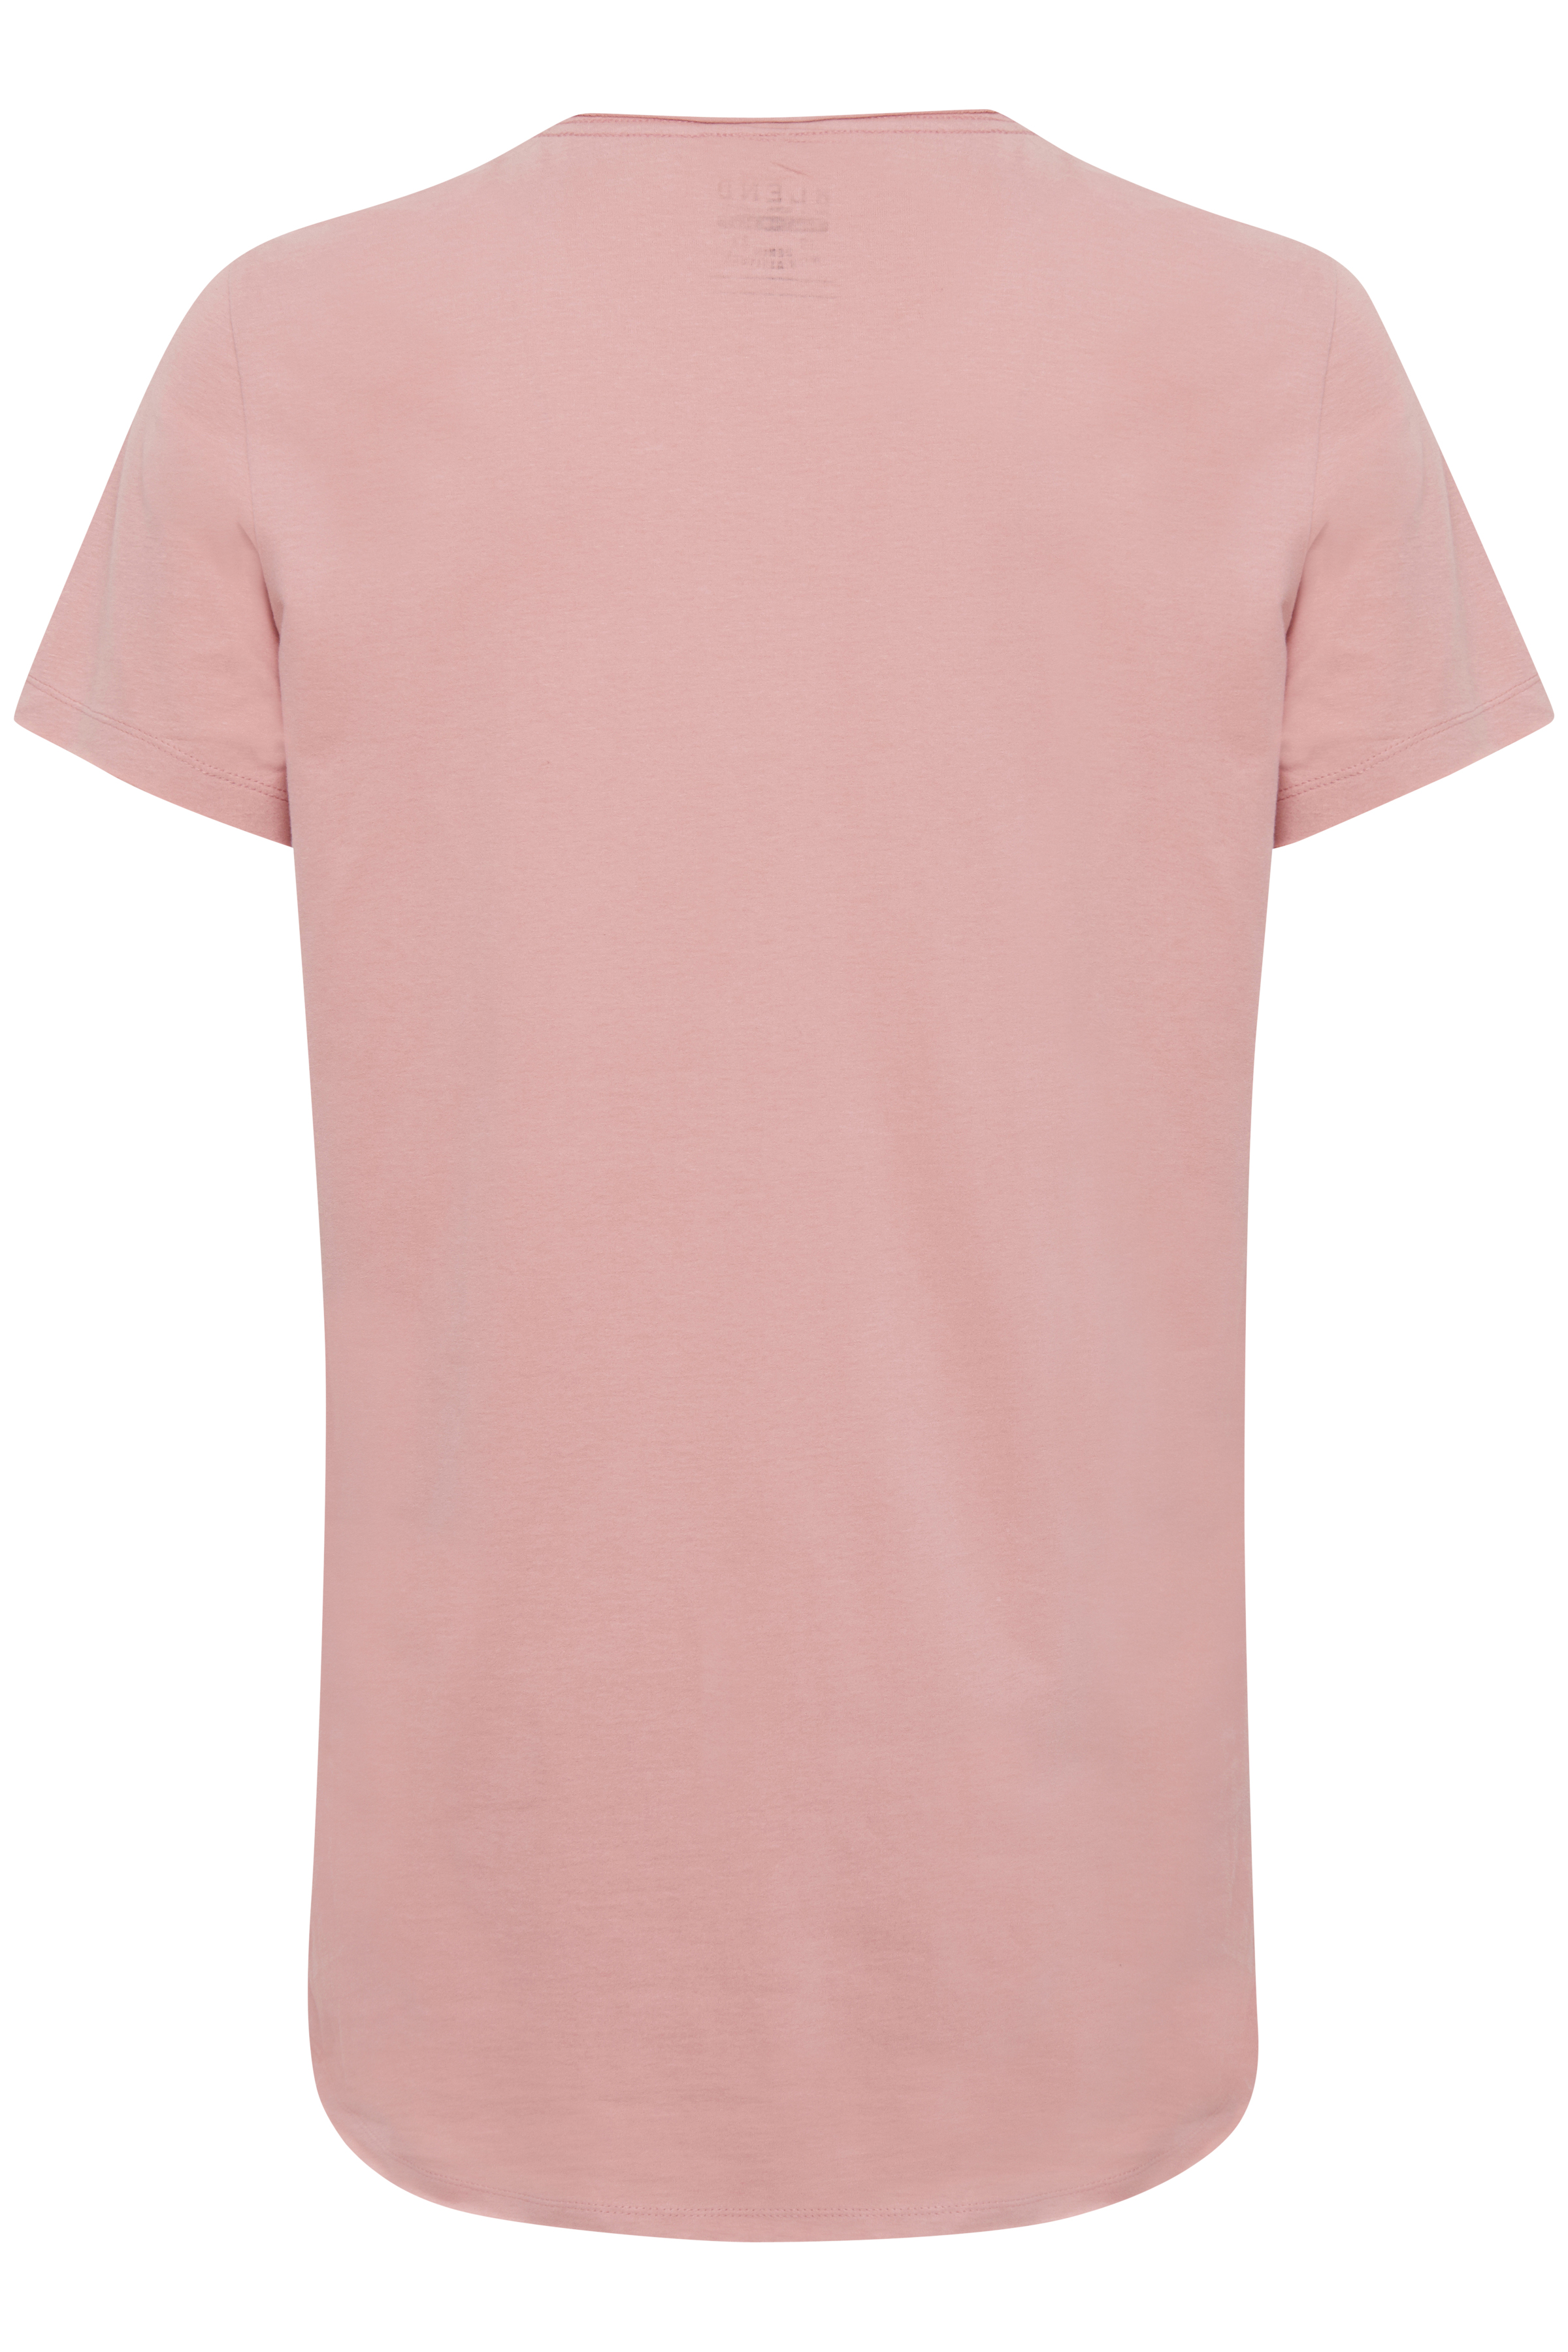 Dusty Rose red T-shirt – Køb Dusty Rose red T-shirt fra str. S-XL her